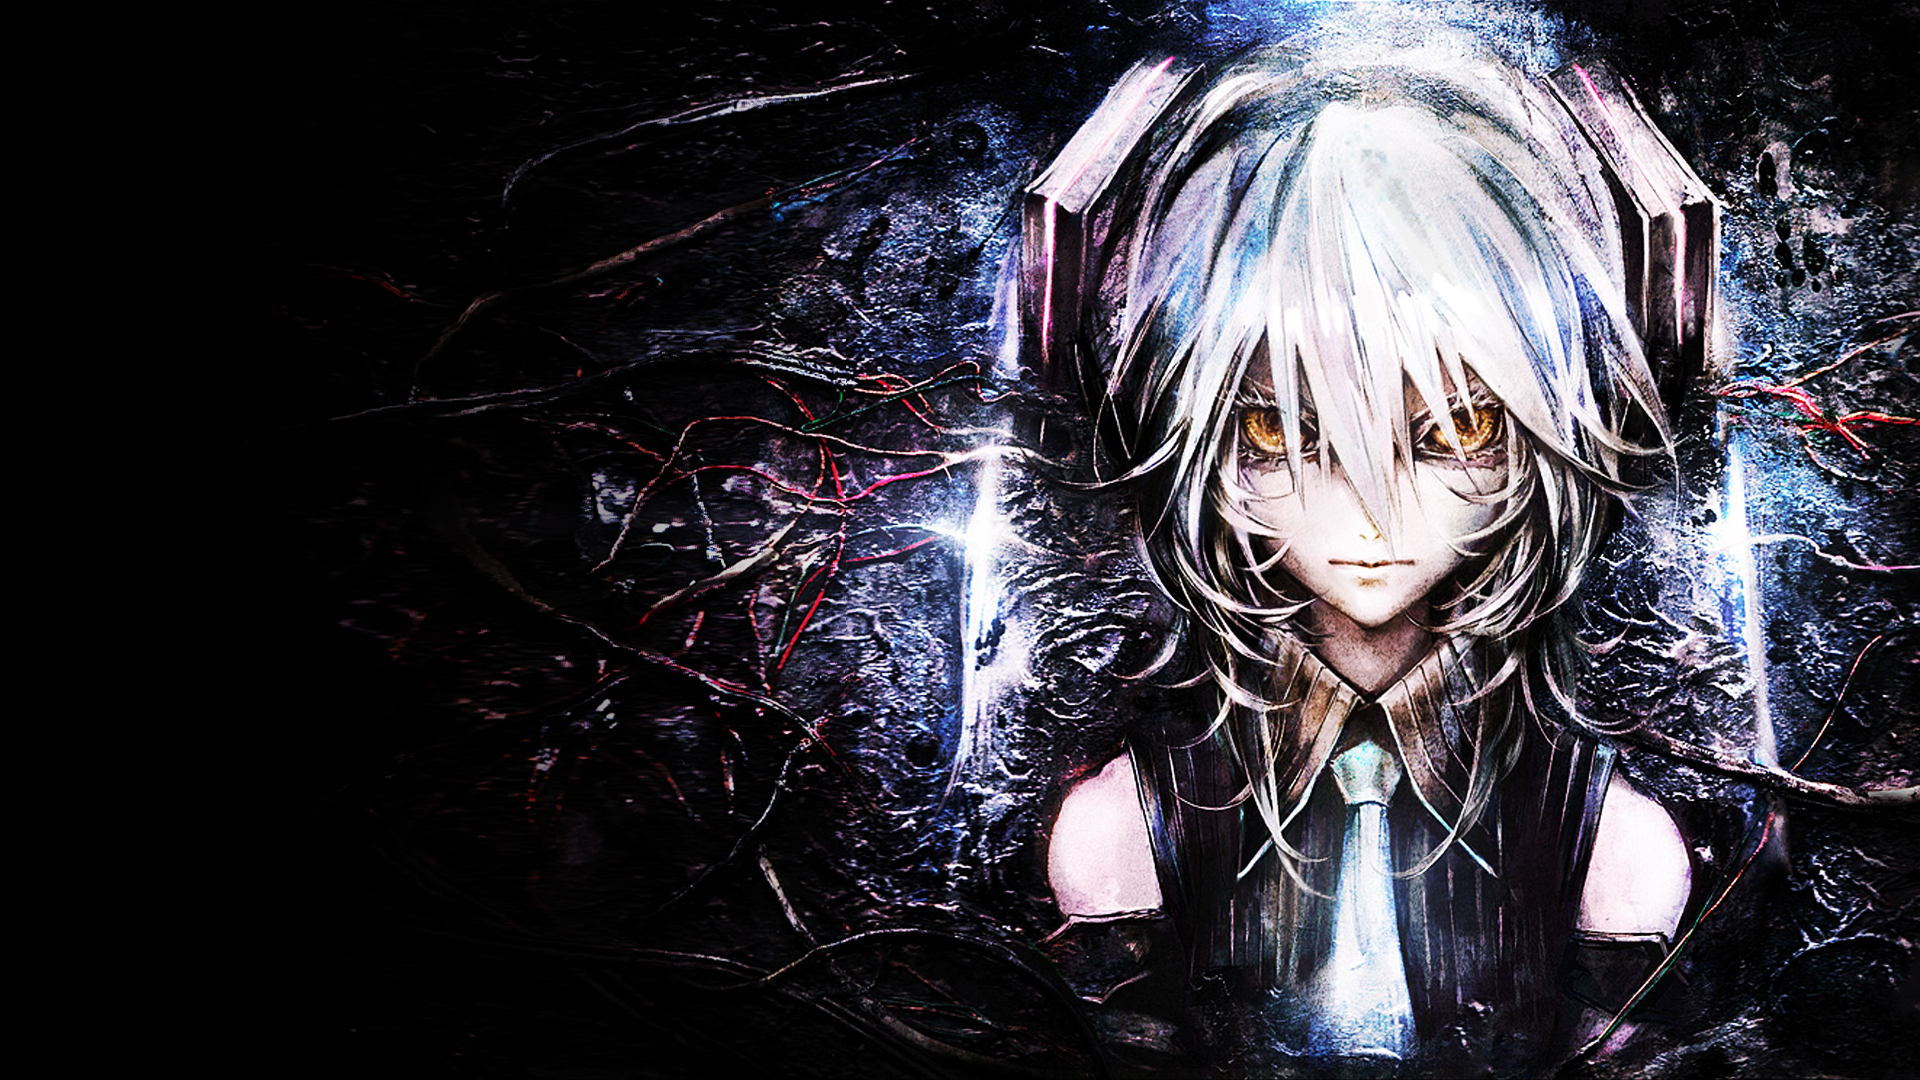 Cool Anime HD Desktop Image 1920x1080